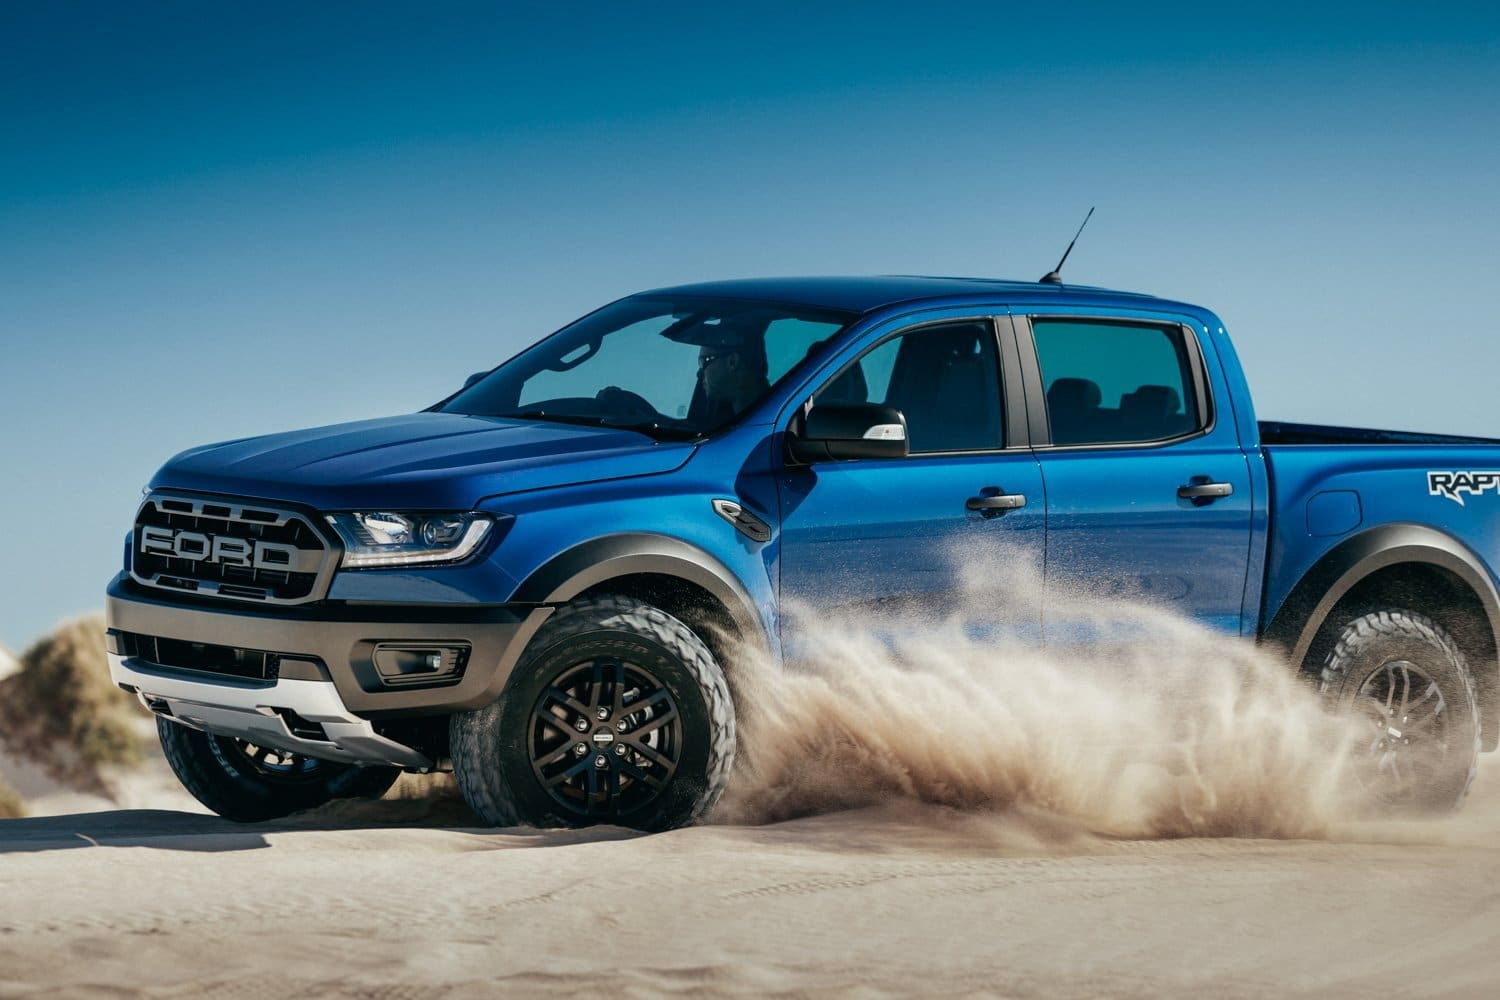 FORD Ranger Raptor revealed - Ford's Halo Truck